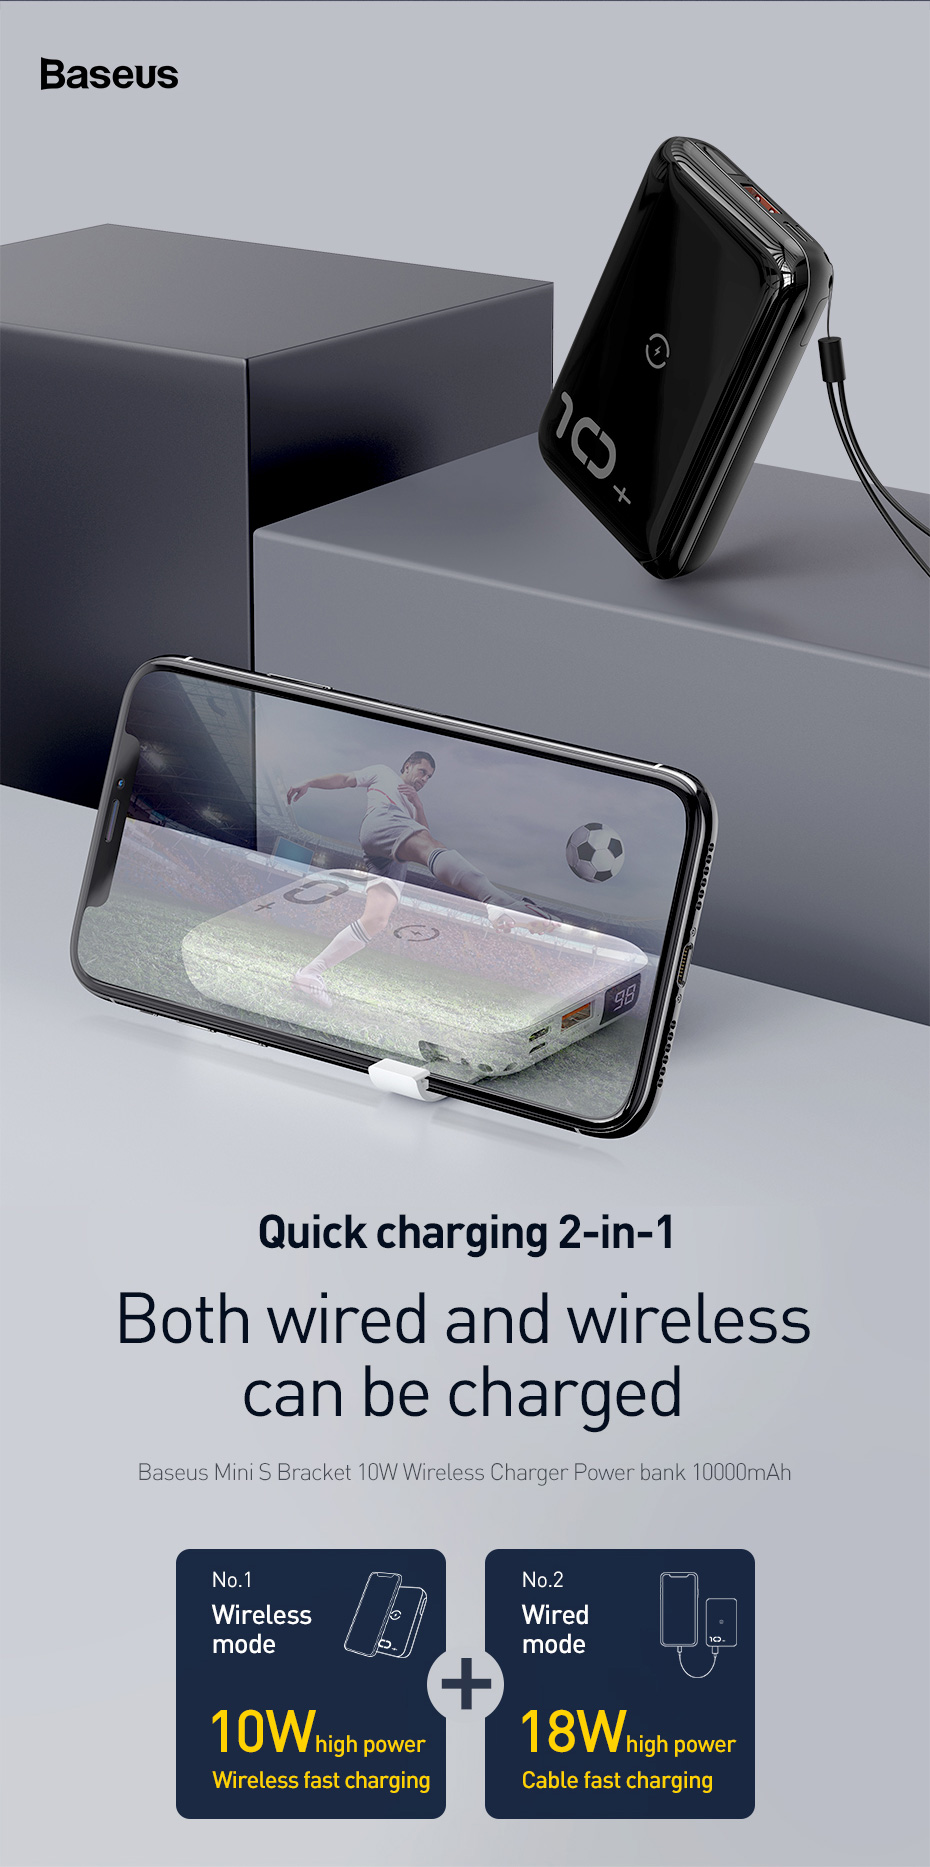 Baseus 10000mAh Qi Wireless Charger Power Bank for iPhone Samsung Huawei Powerbank PD Quick Charge 3.0 Portable External Battery 3